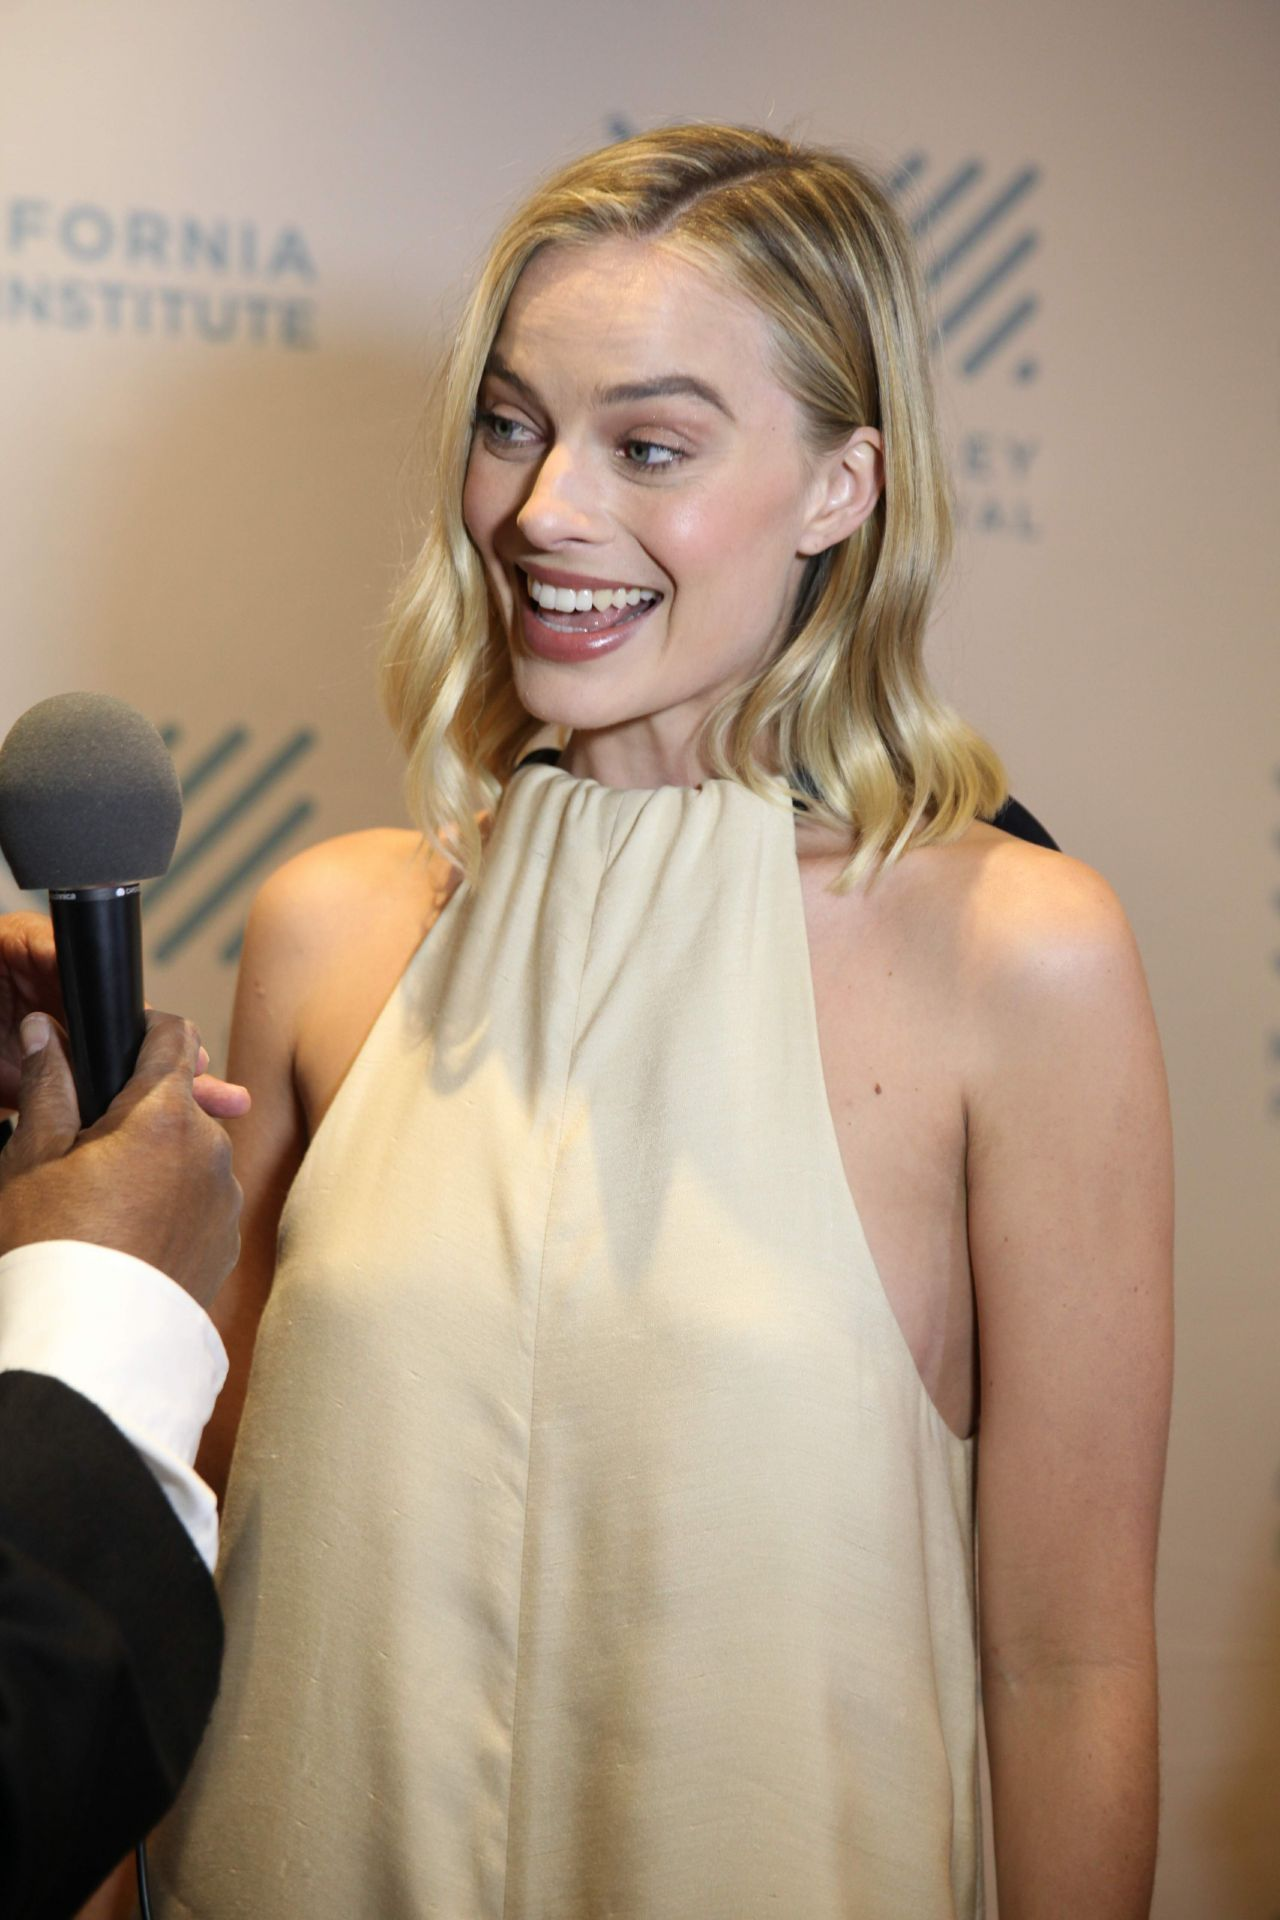 http://celebmafia.com/wp-content/uploads/2017/12/margot-robbie-california-film-institute-premiere-of-i-tonya-in-san-rafael-12-02-2017-5.jpg